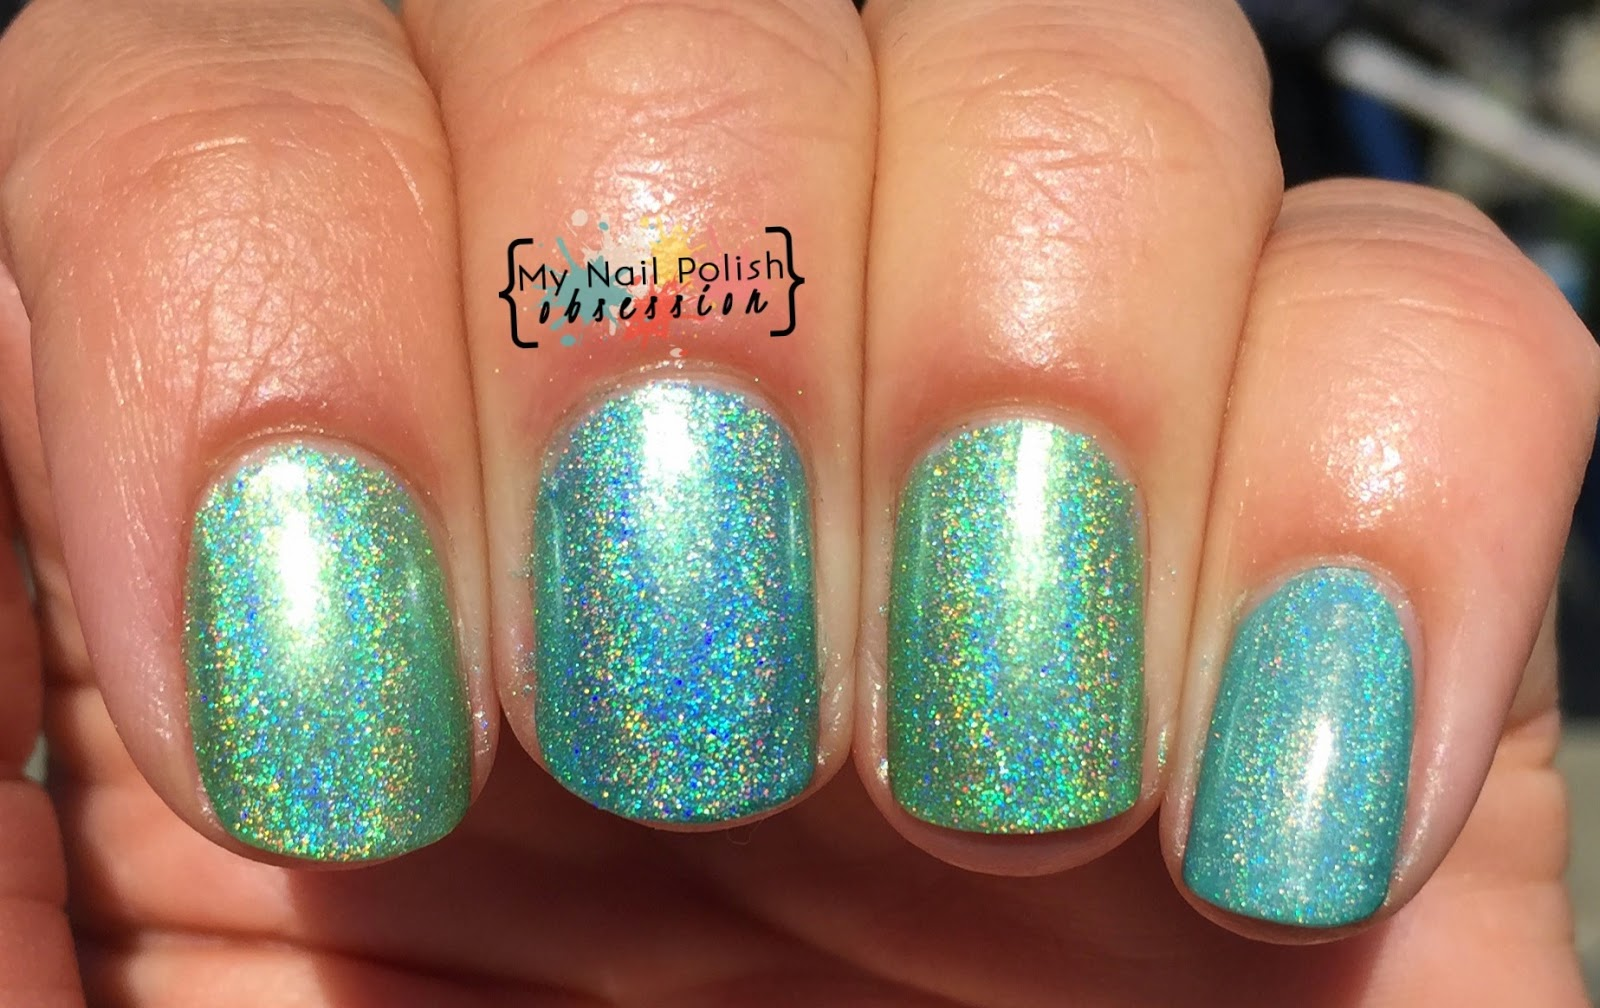 Comparison of Smitten Polish A Shimmer of Hummingbirds, Whiskey in the Jar & Audrey's Rainbow